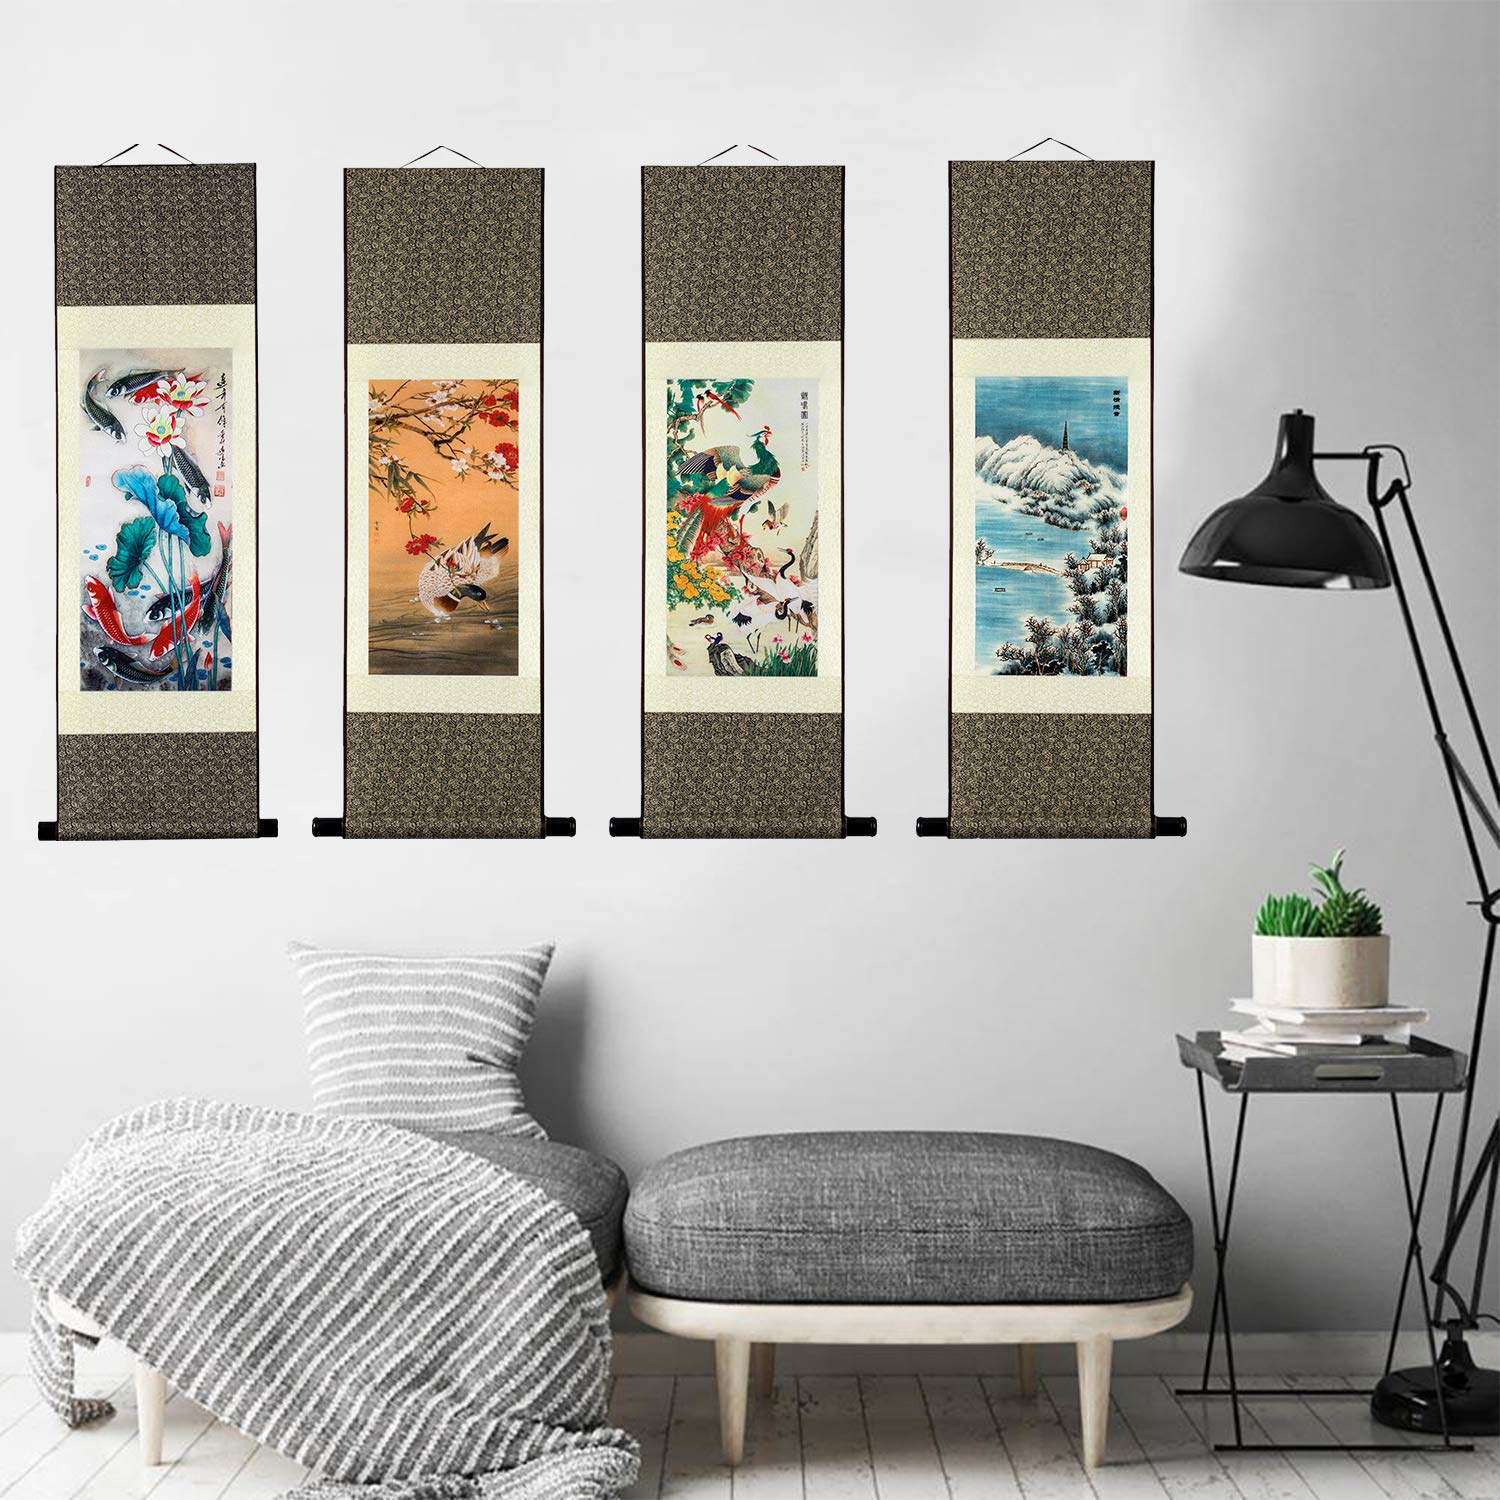 UNIQUELOVER Asian Silk Scroll /& Home Decorate Chinese Dragon Picture Scroll /& Wall Scroll Hanging Artwork Painting